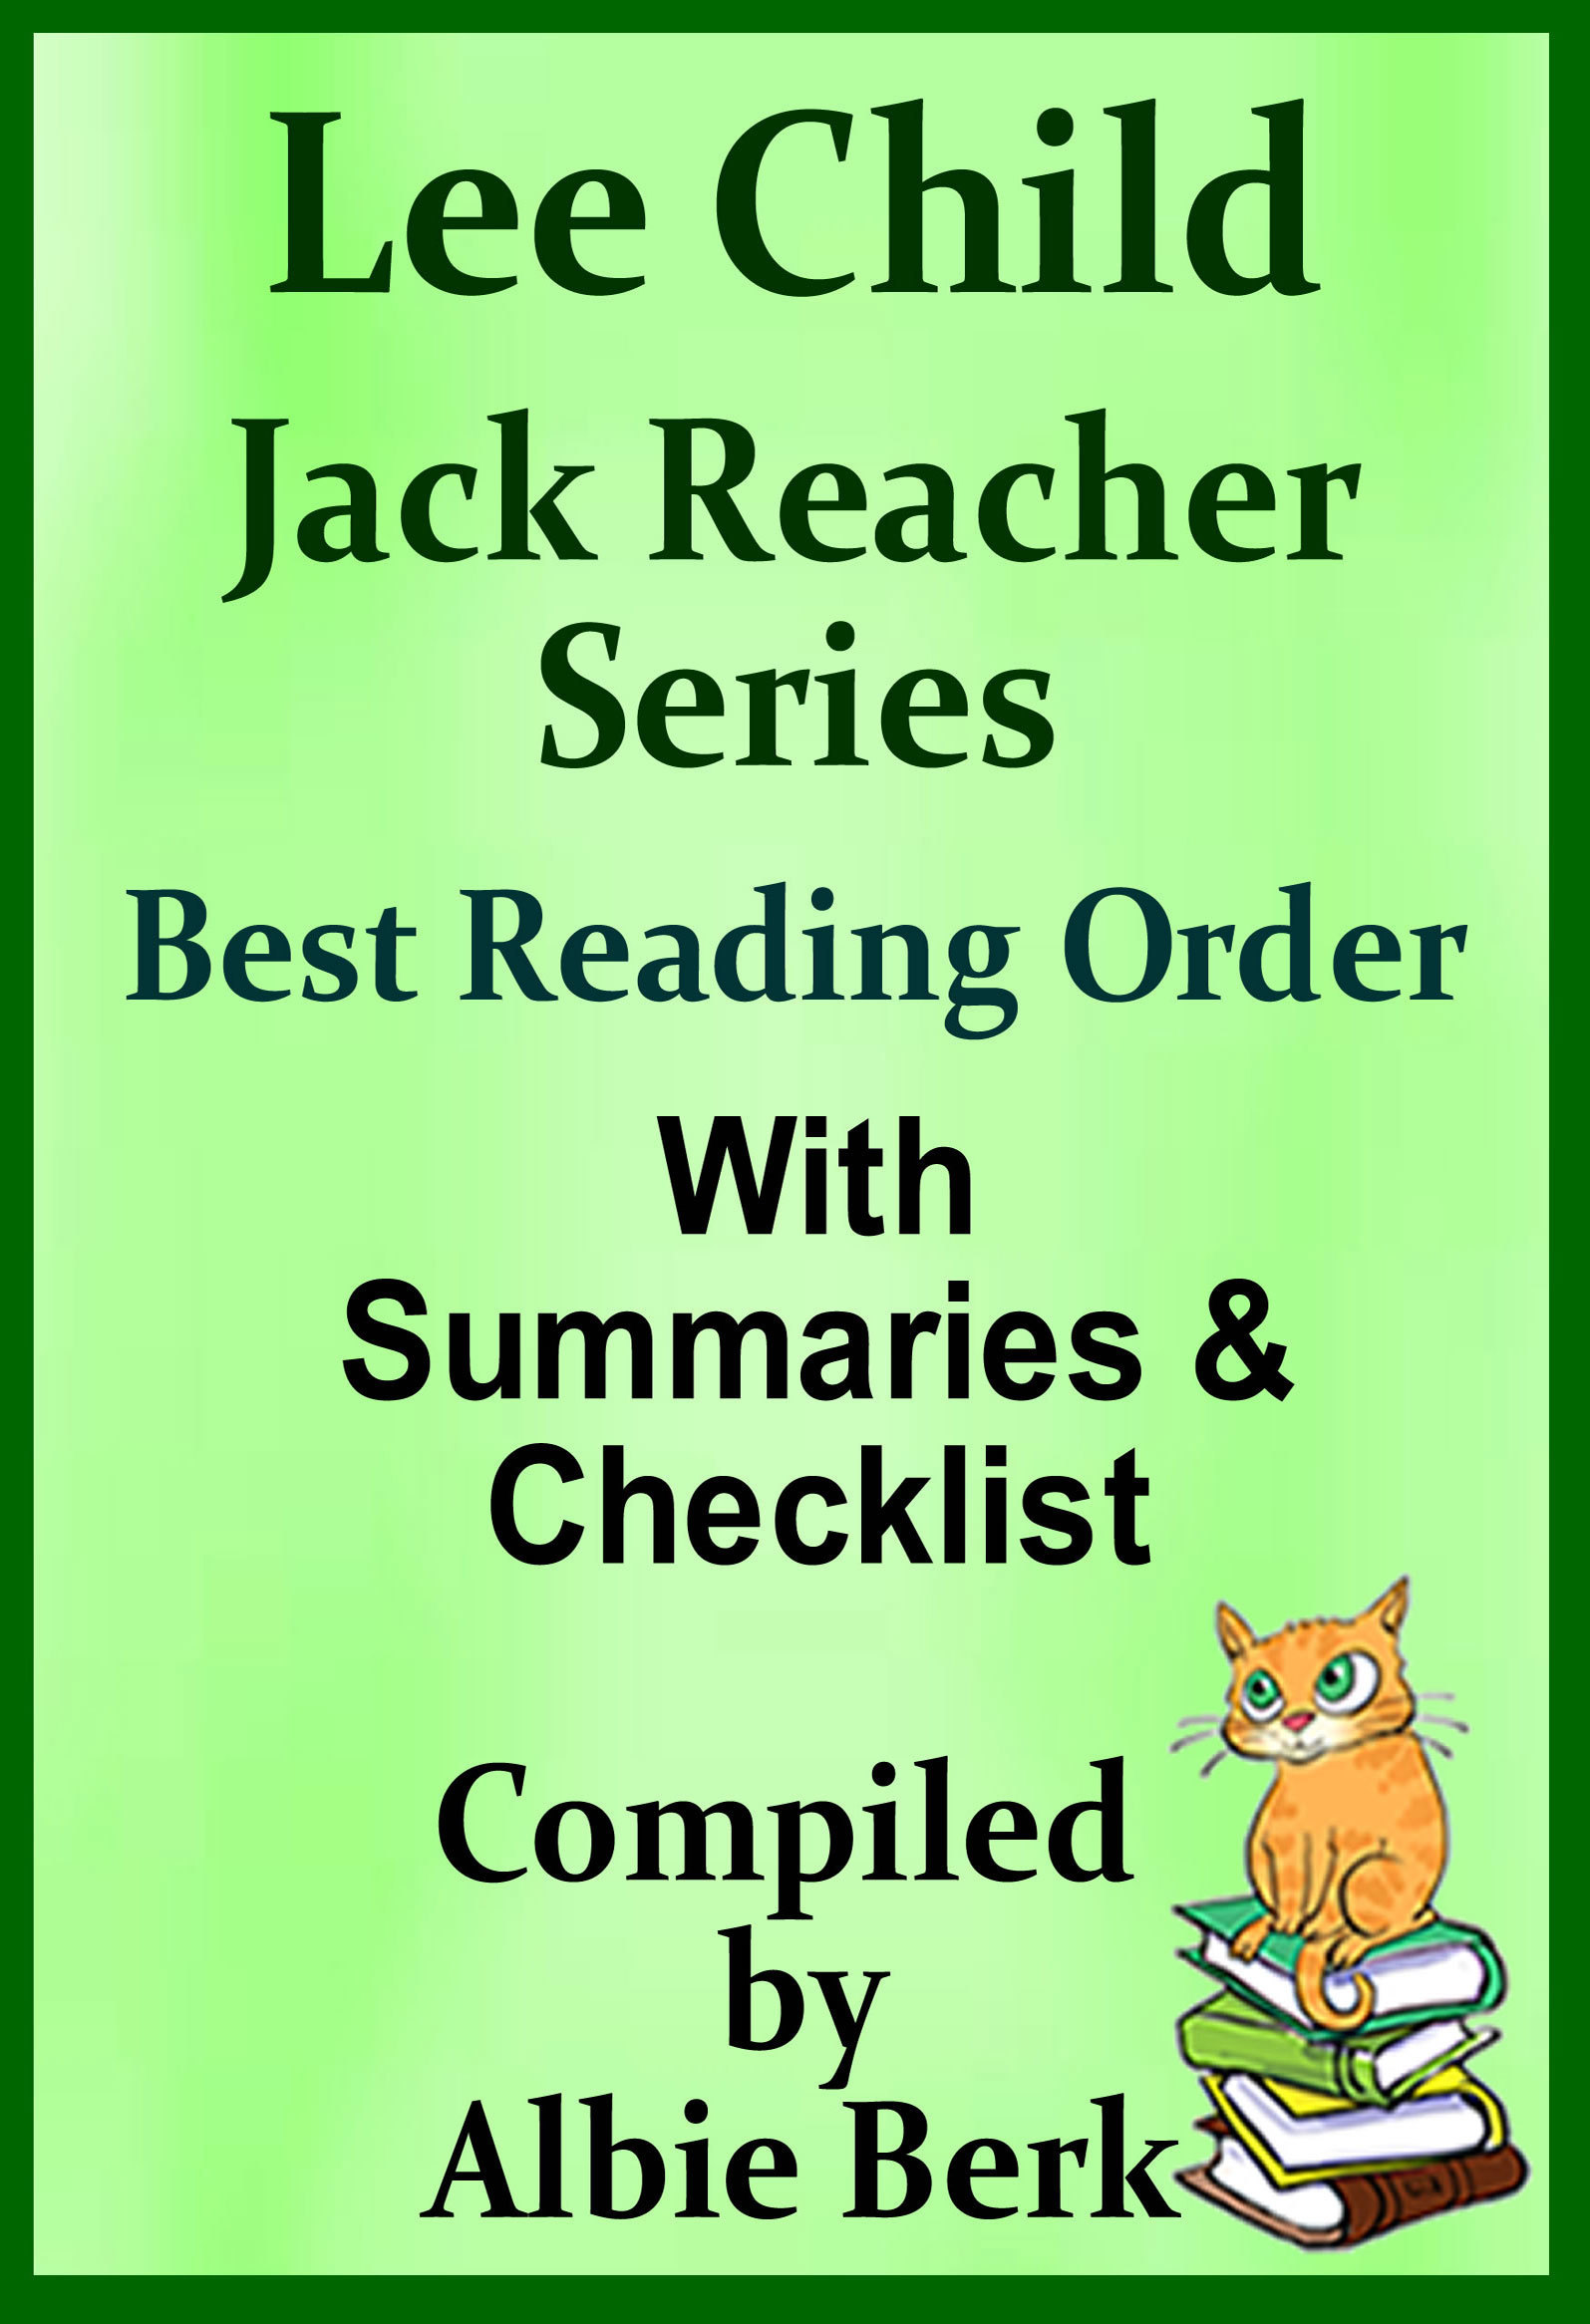 Lee Child's Jack Reacher Series: Best Reading Order - with Summaries  Checklist